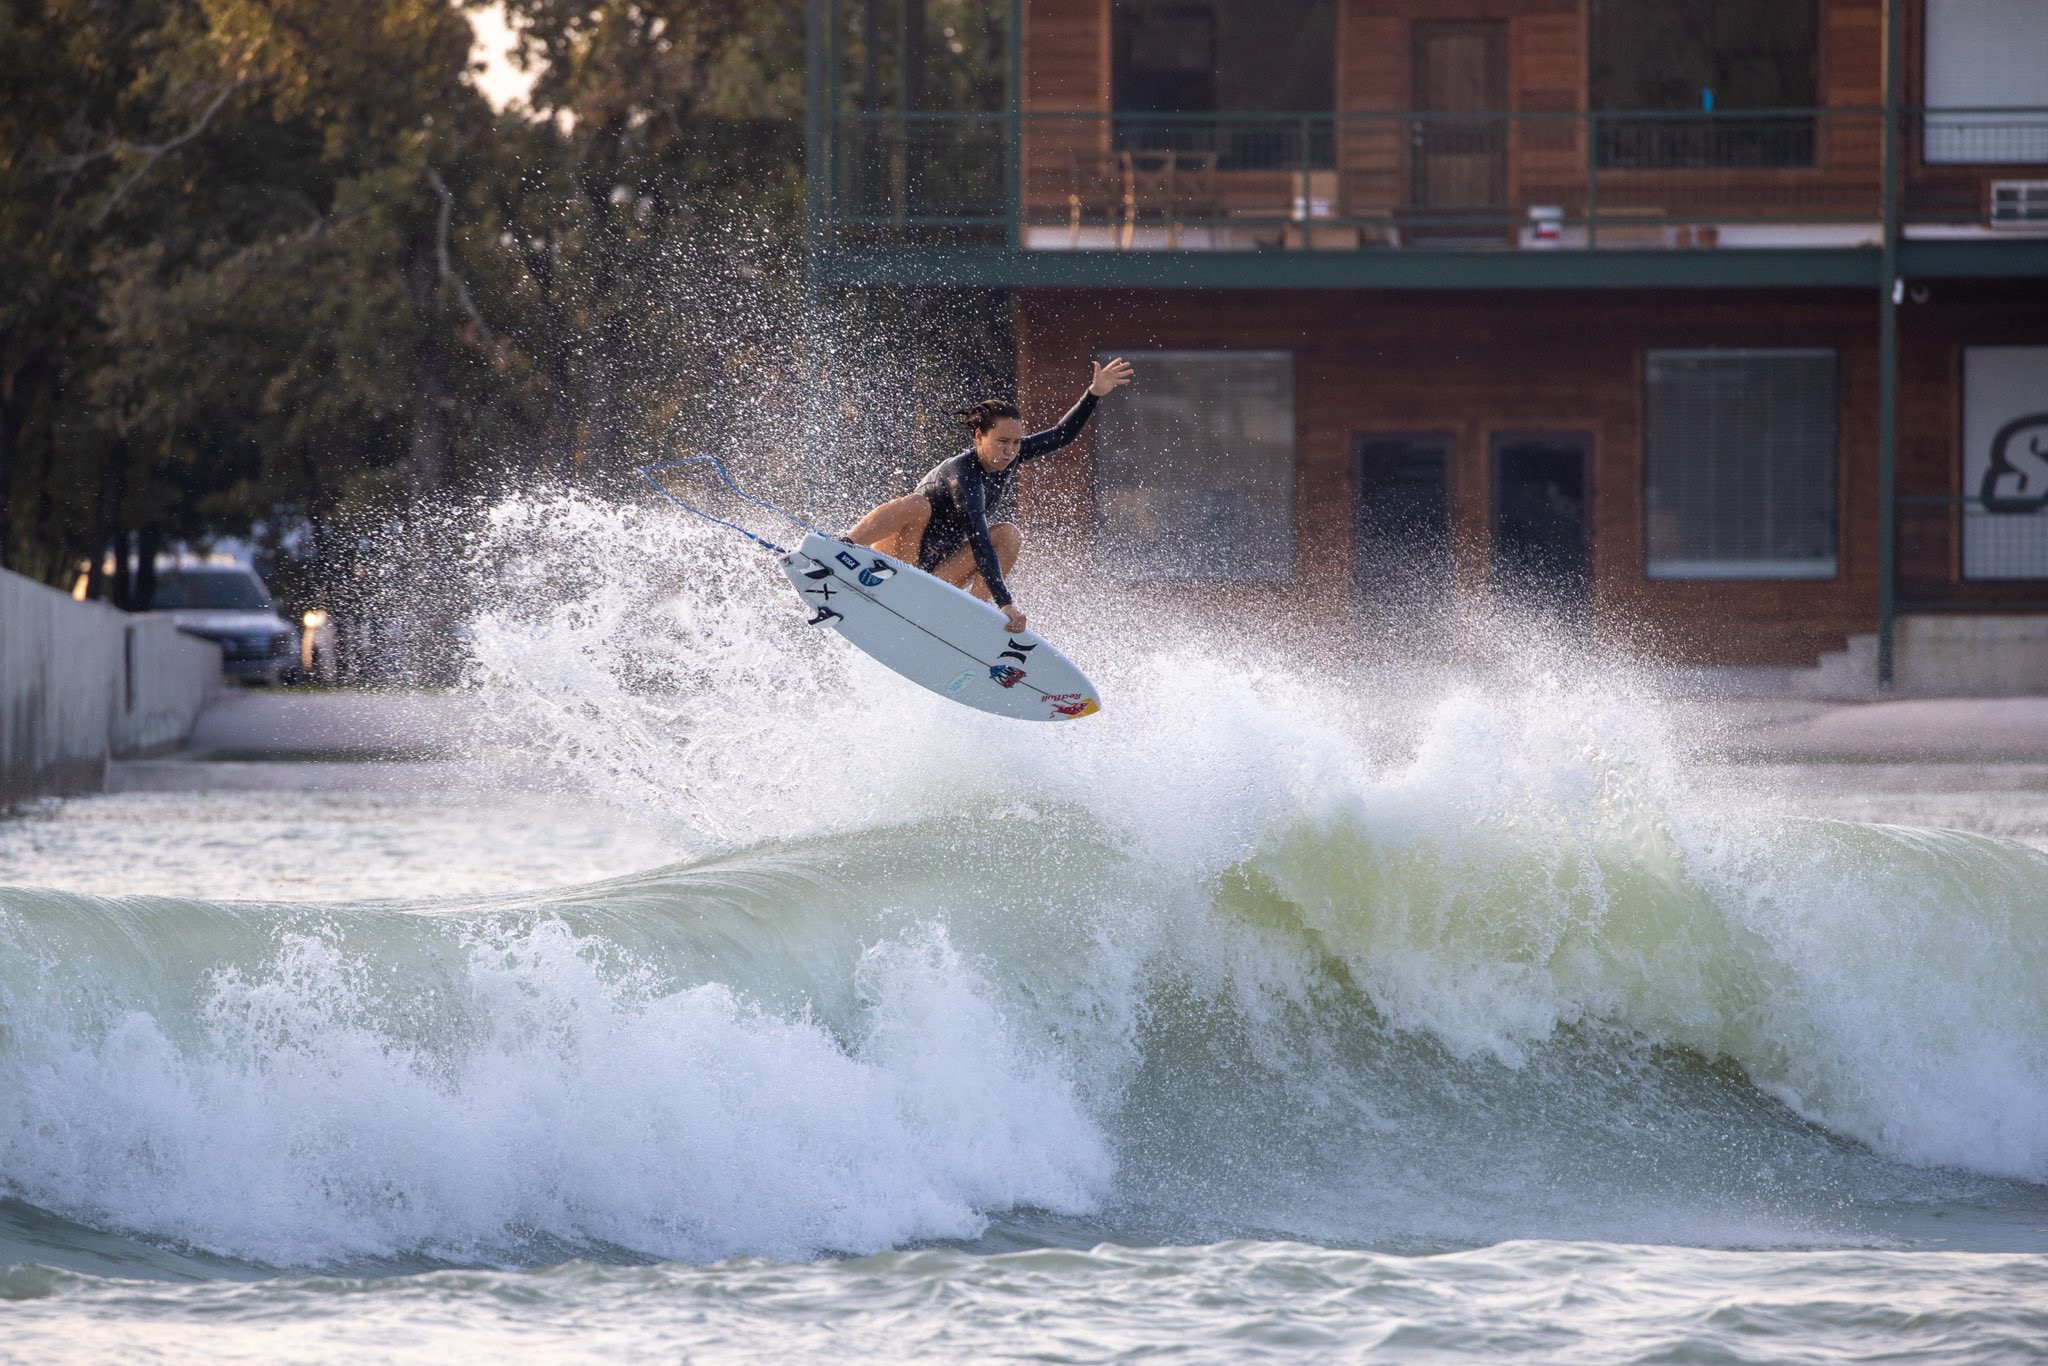 Carissa Moore getting some air at the BSR training camp ©USA Surfing